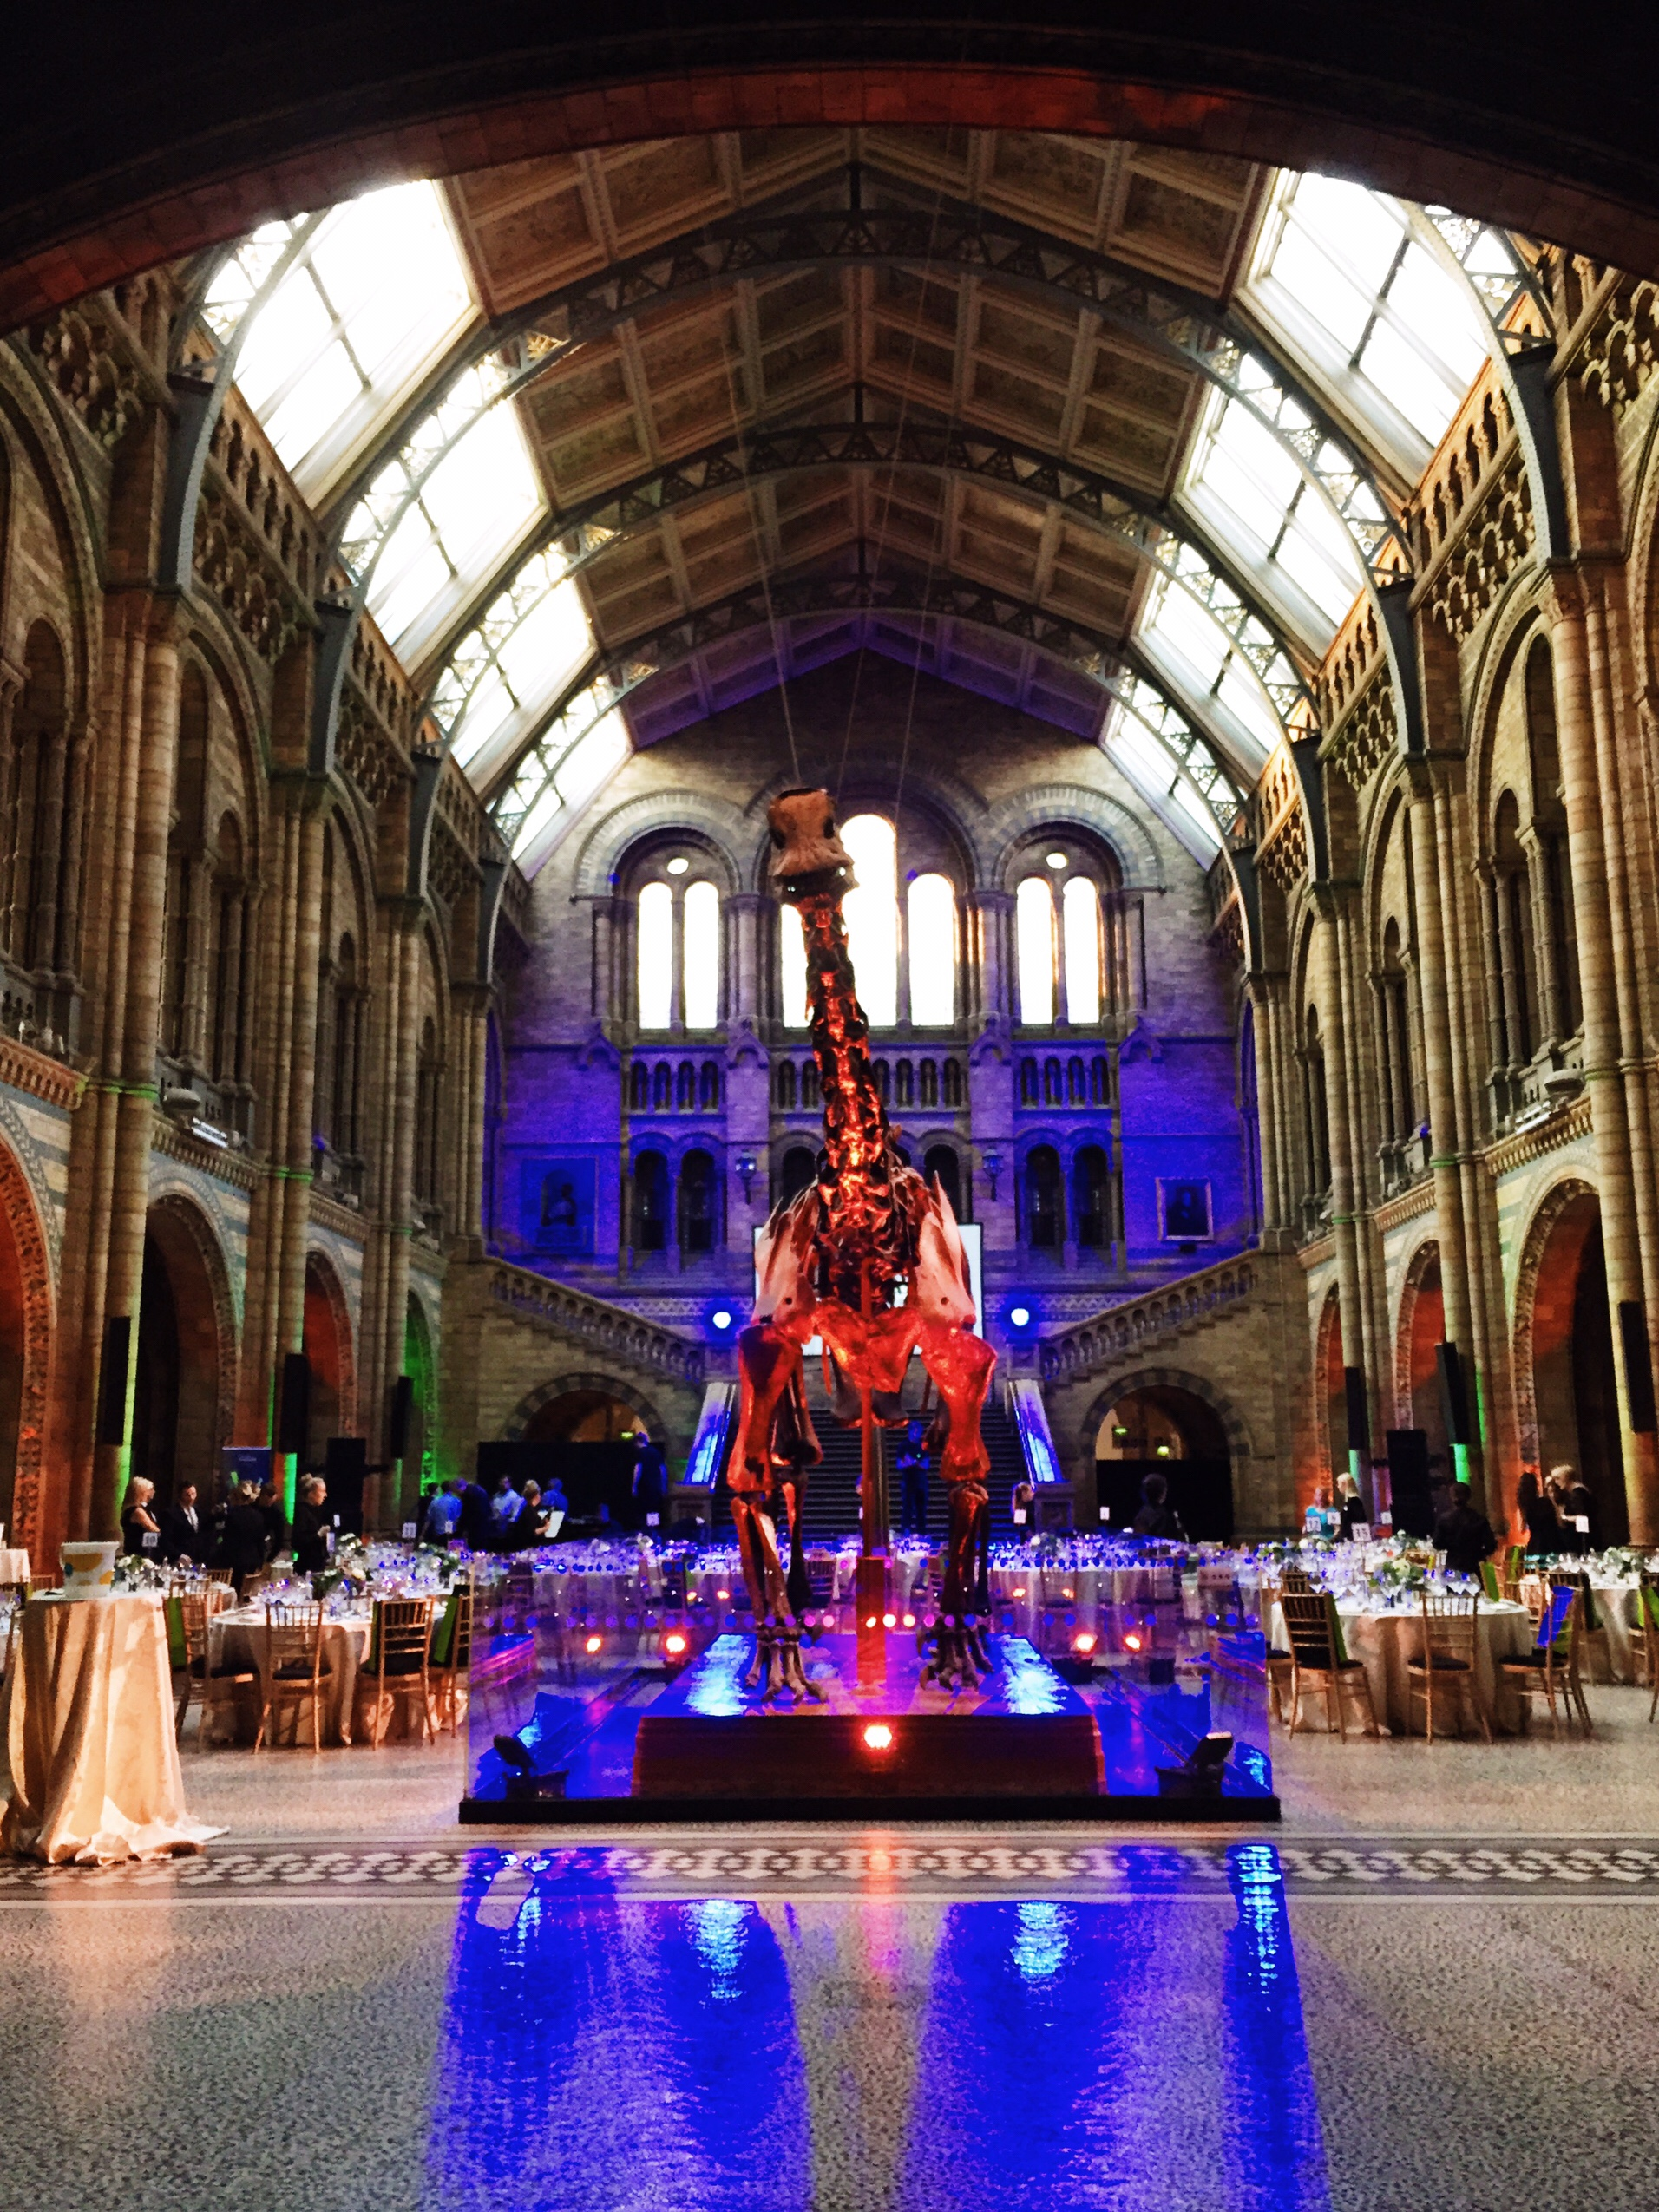 Image of Dippy lit up at Natural History Museum